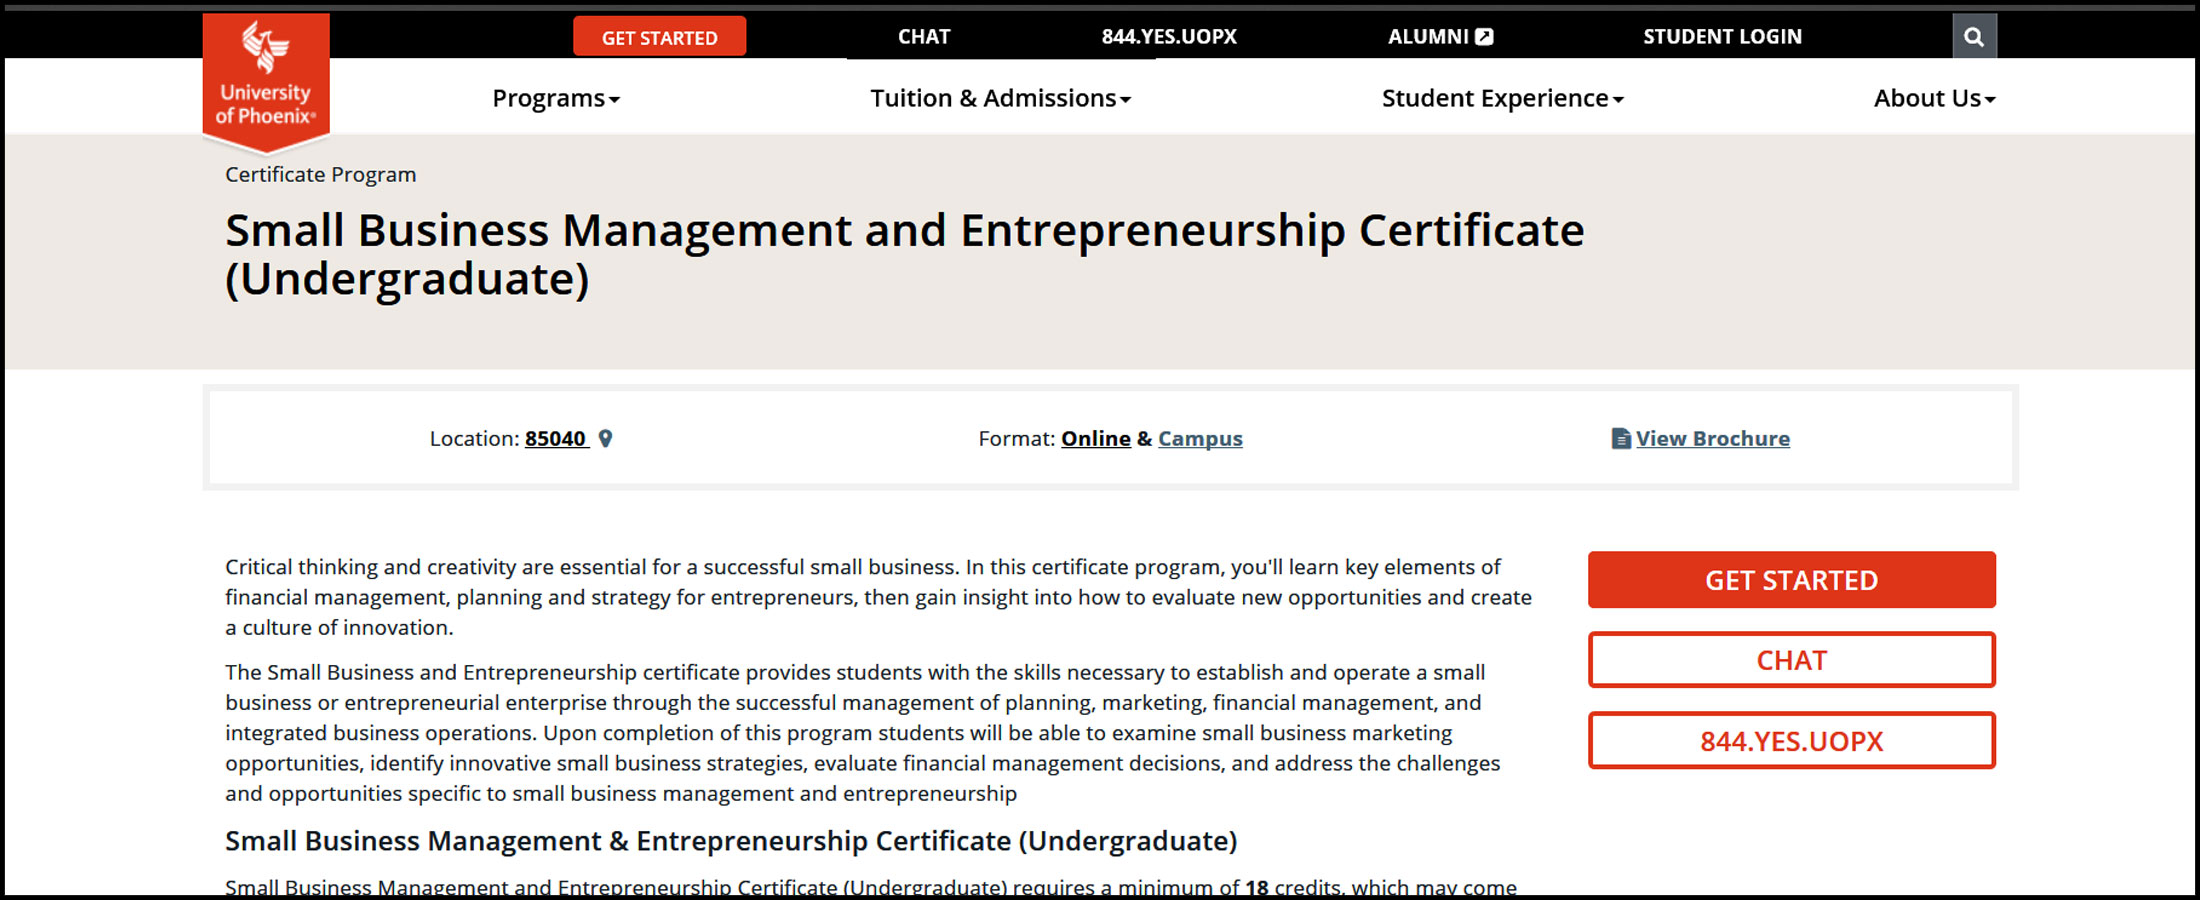 University Of Phoenix Small Business Management And